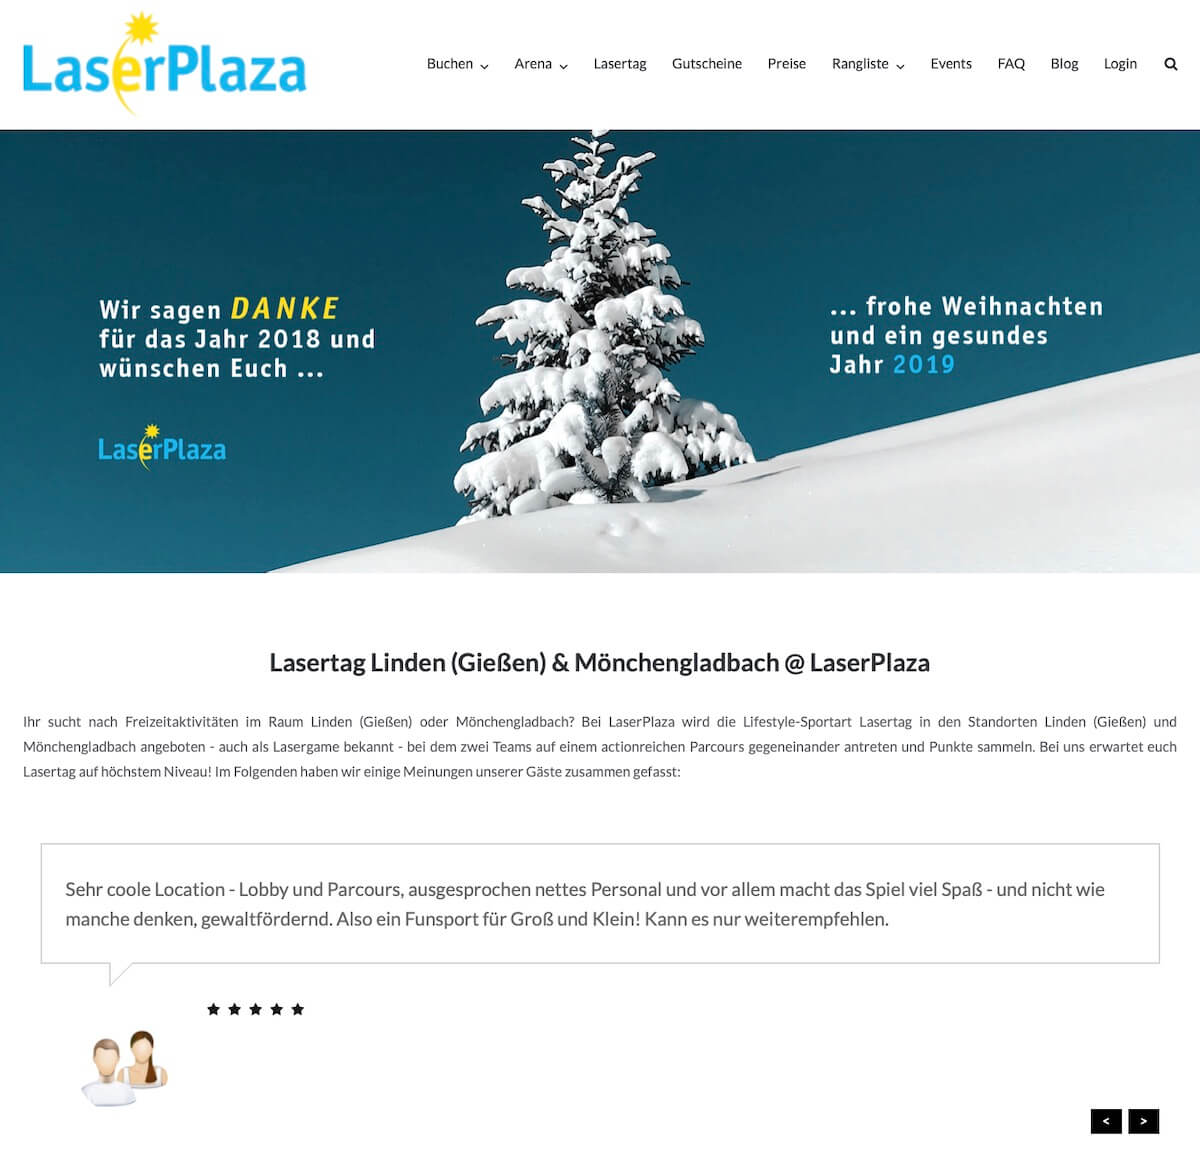 bookingkit-marketing-weihnachten-beispiel-LaserPlaza